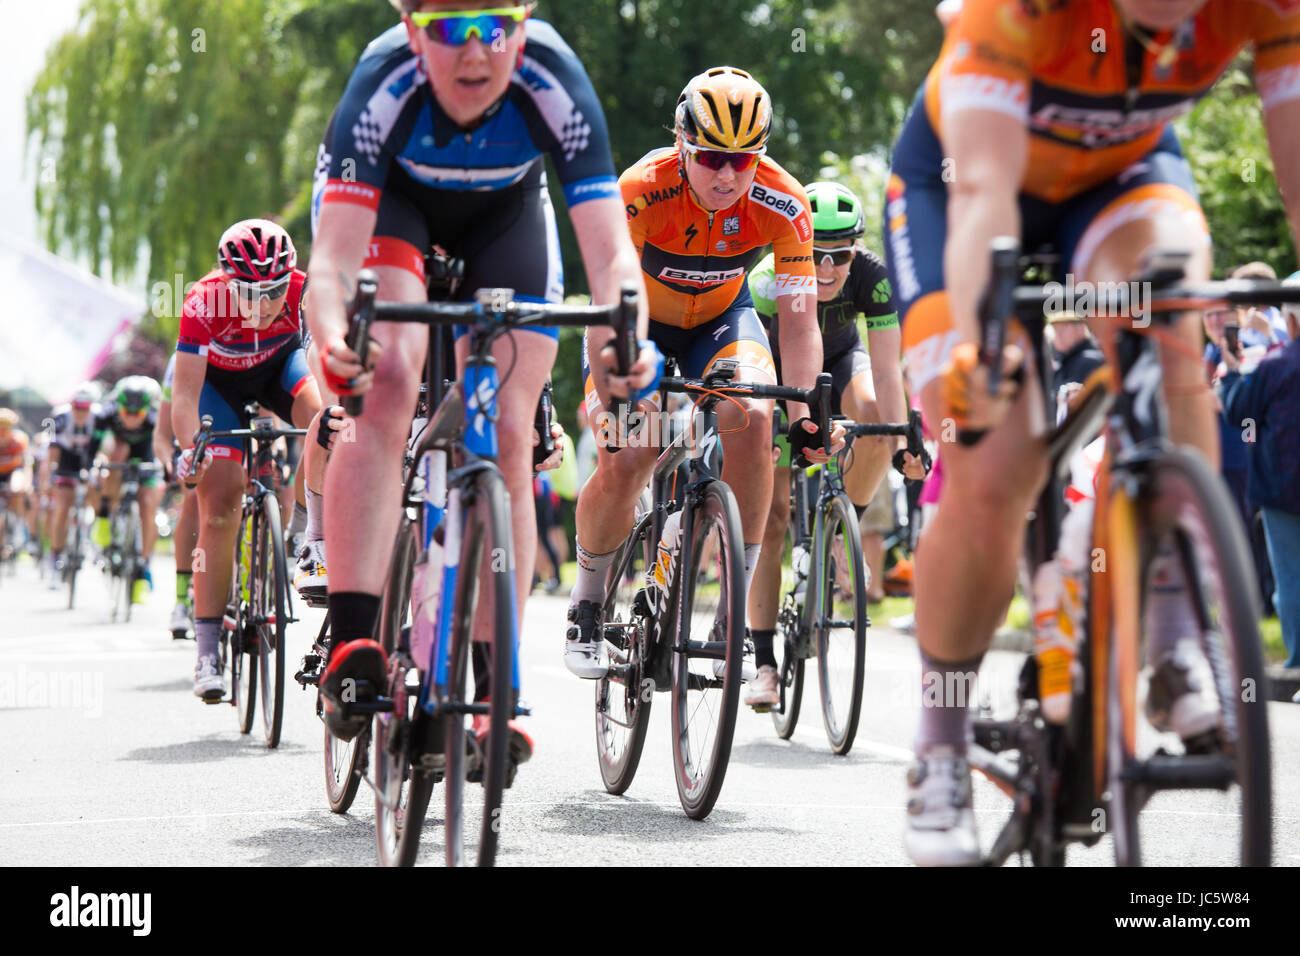 The Women's Tour Wellesbourne The OVO Women's Cycle Tour, stage three, the sprint through Wellesbourne, - Stock Image